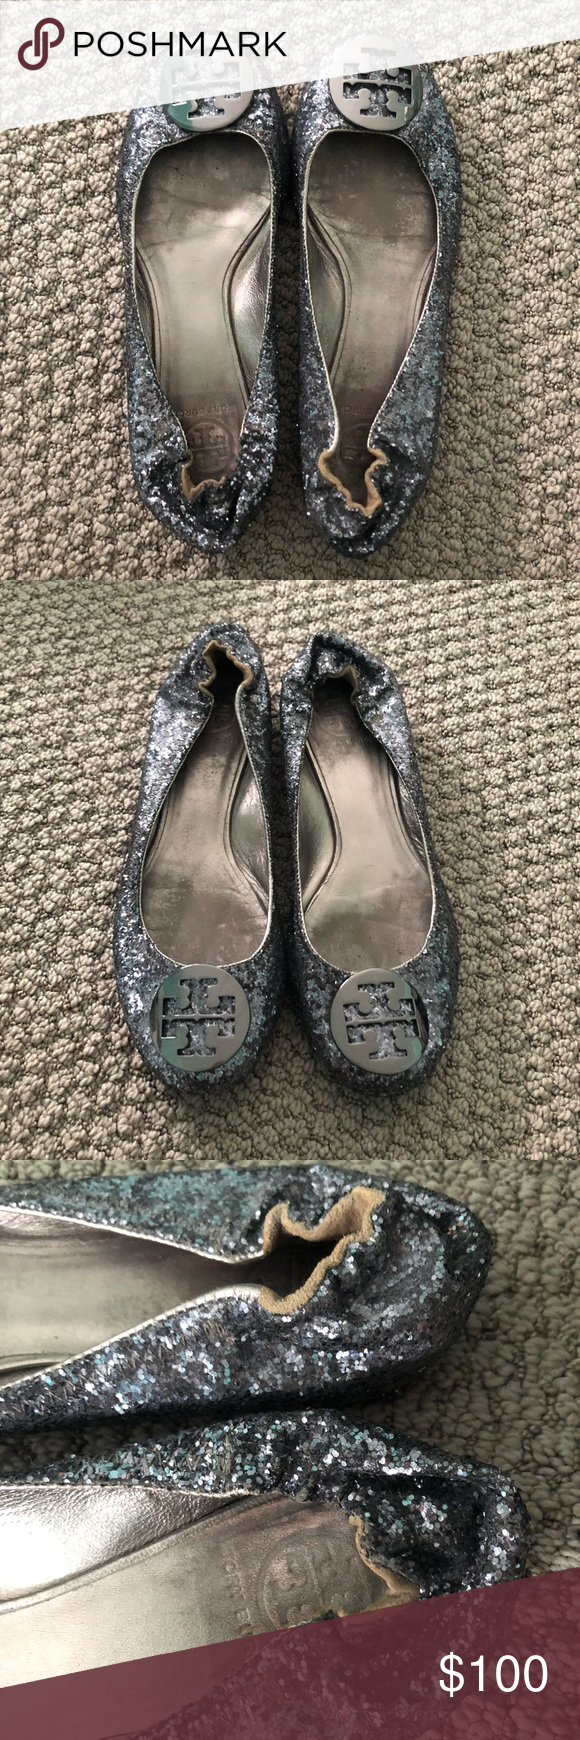 99c5477b03fd Tory Burch Reva Glitter Flat Gently used condition Tory Burch Reva Flats.  Size 8.